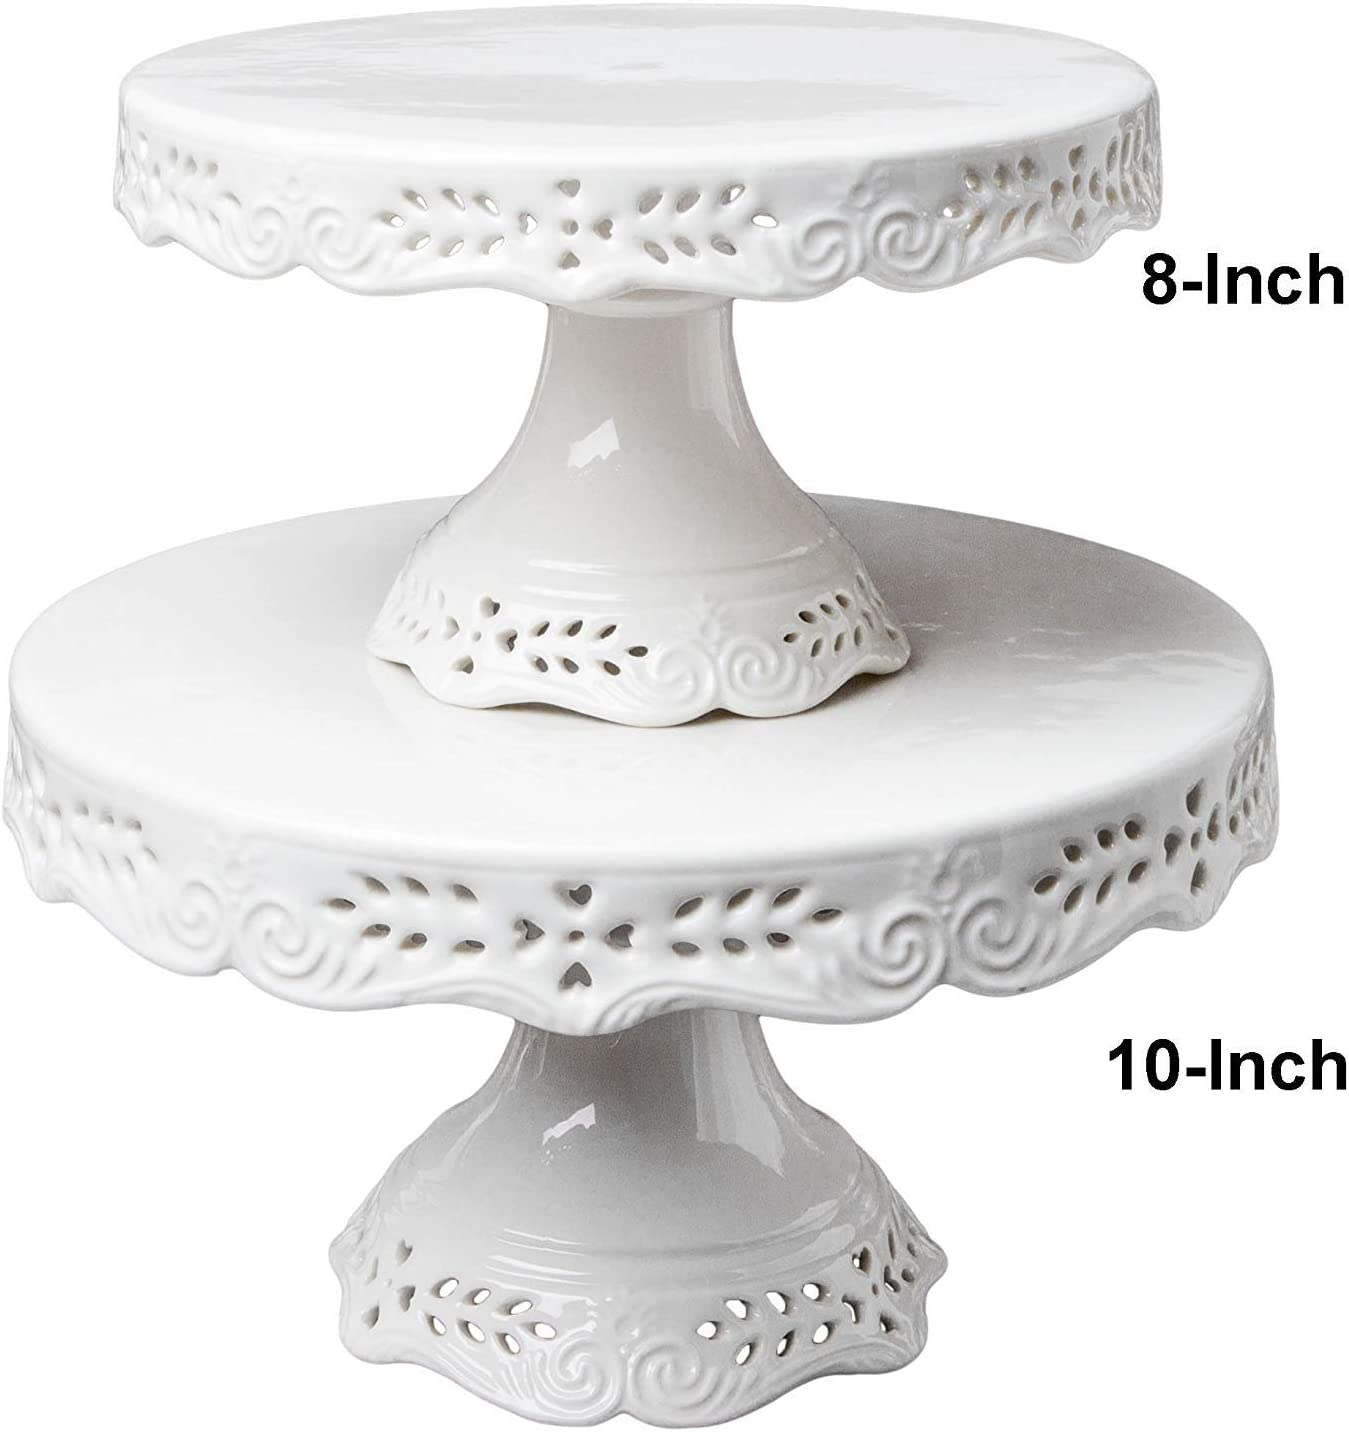 Wedding Party Decor Baby Shower Birthday Dessert Display Plates for Snacks and Cookies Floral Embossed Victorian Candy Dish BPFY 10 Inch Round White Ceramic Cake Stand Decorative Cupcake Stand